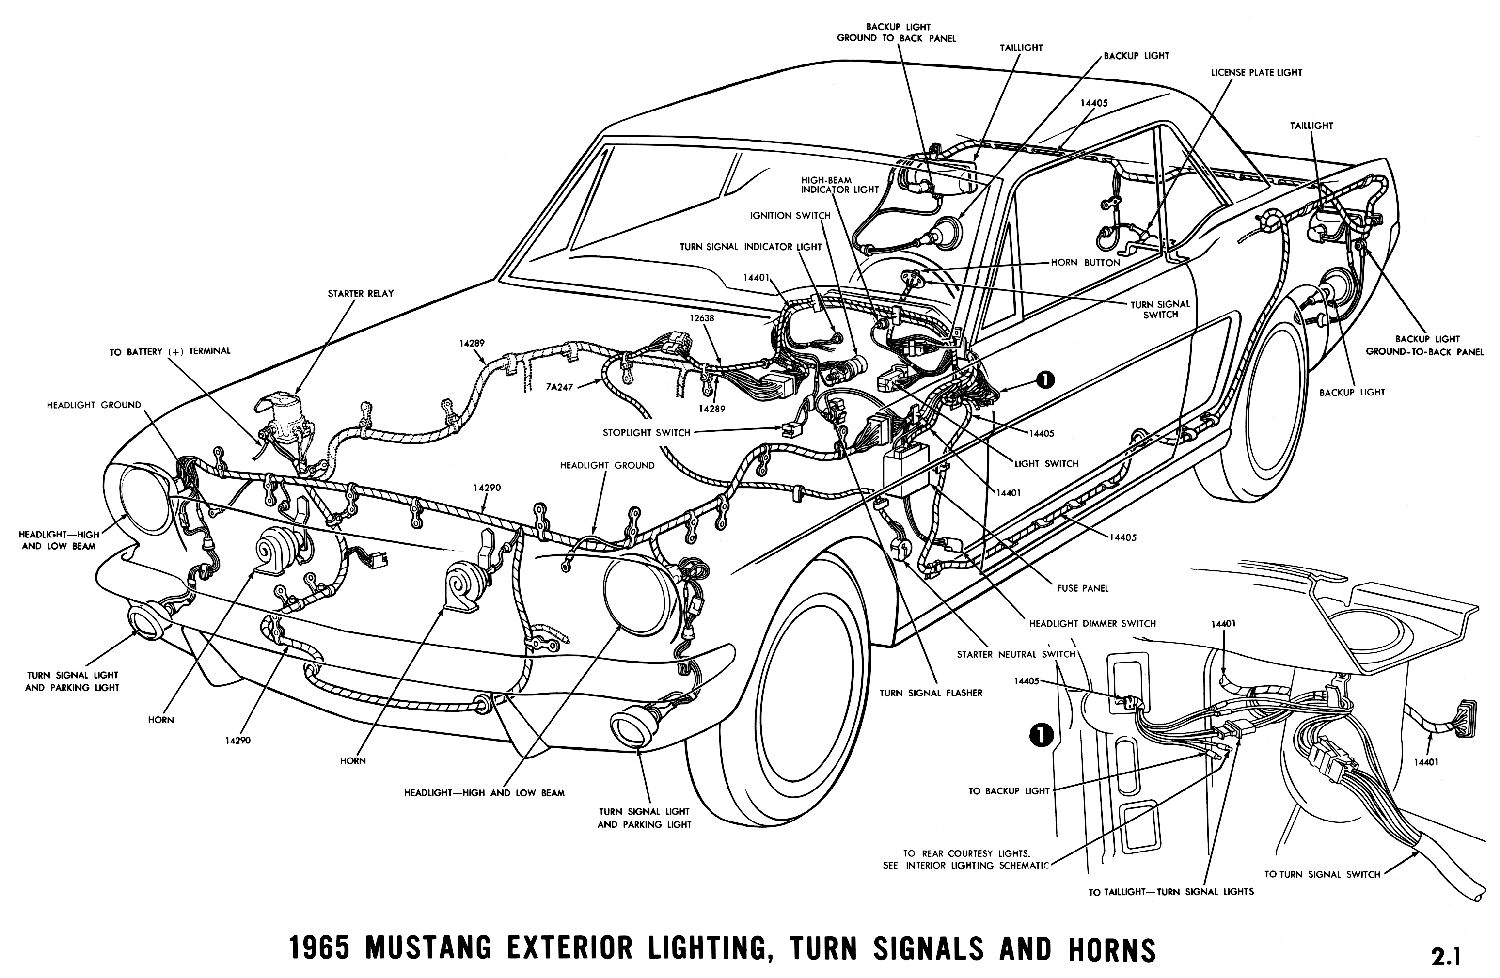 1965 Mustang Wiring Diagrams Average Joe Restoration Basic Brake Light Diagram 1965d